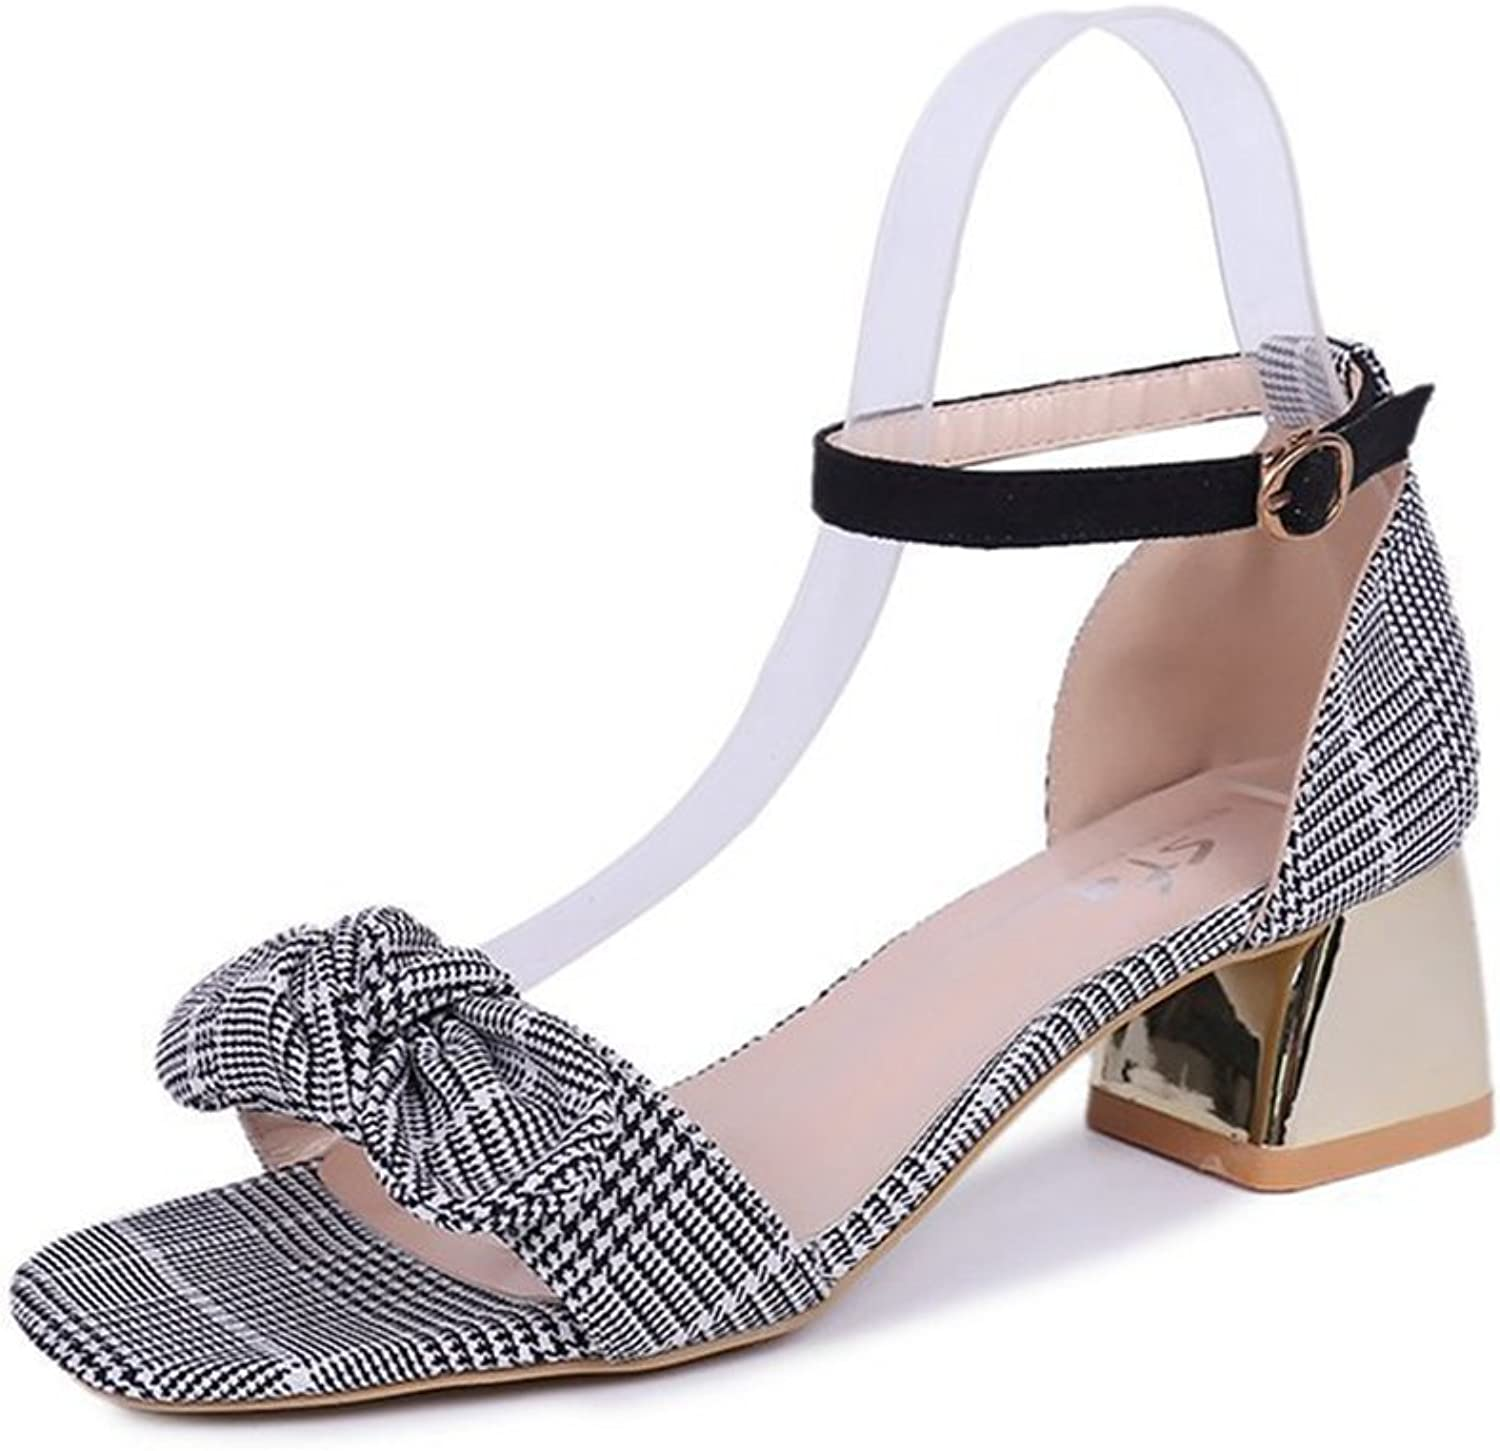 Btrada Womens Fashion Bowknot Heeled Sandals Open Toe Ankle Strap Summer Rome Dress shoes Crude Heel